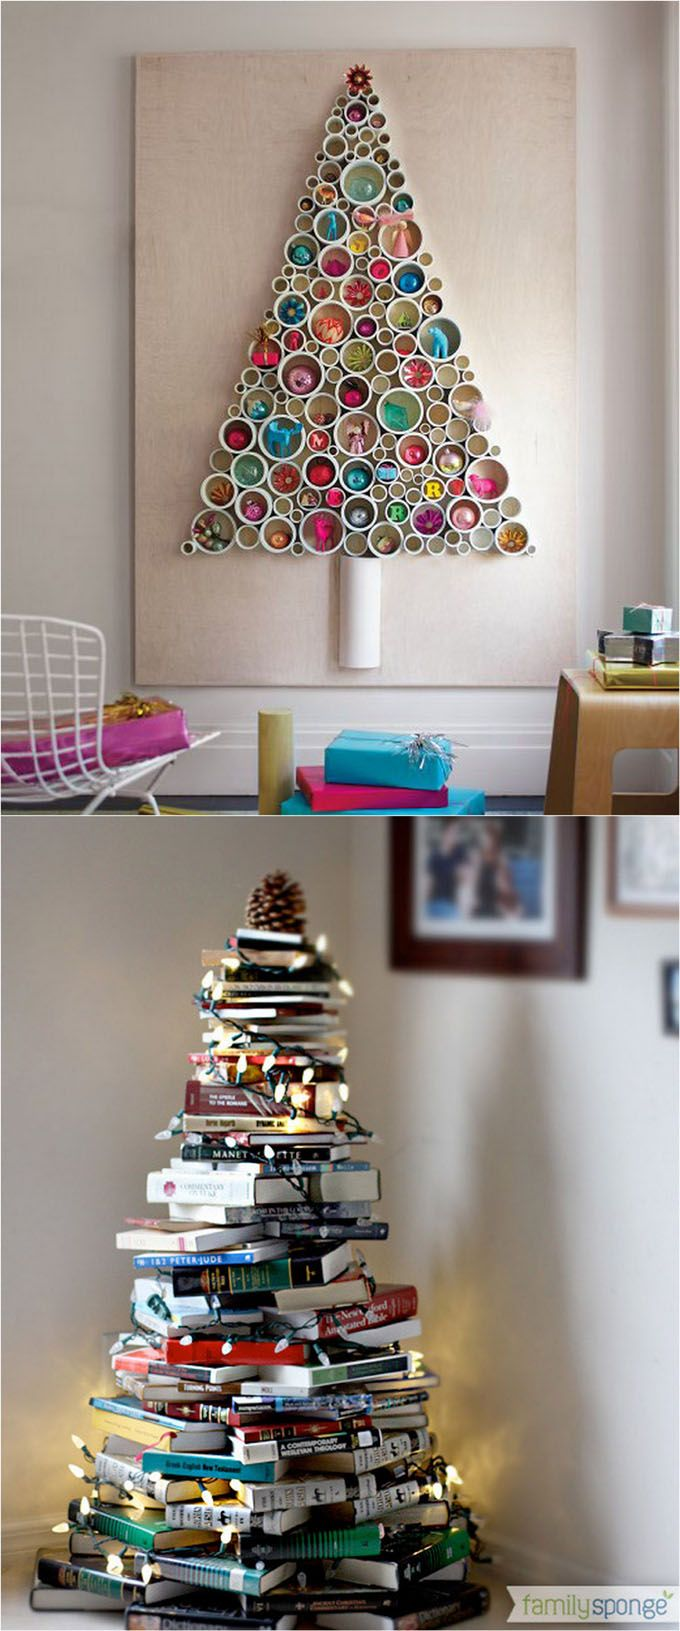 How to make a christmas decoration using recycled materials - 18 Unconventional And Beautiful Diy Christmas Trees Ideas To Create Unique Christmas Decorations For Your